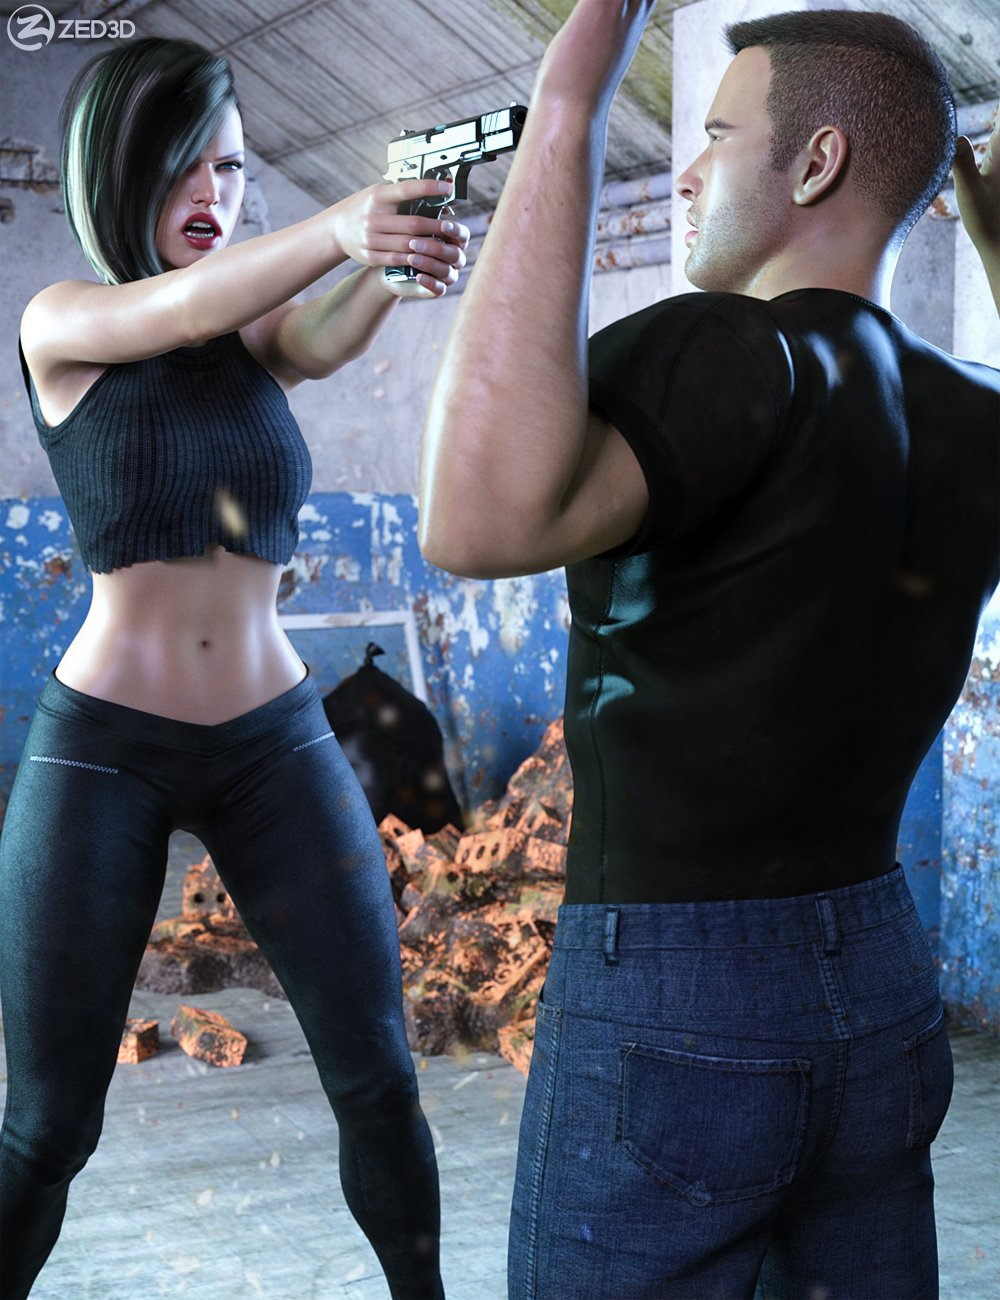 Z At Gunpoint Scenario Builder for Genesis 8 and 8.1 by: Zeddicuss, 3D Models by Daz 3D